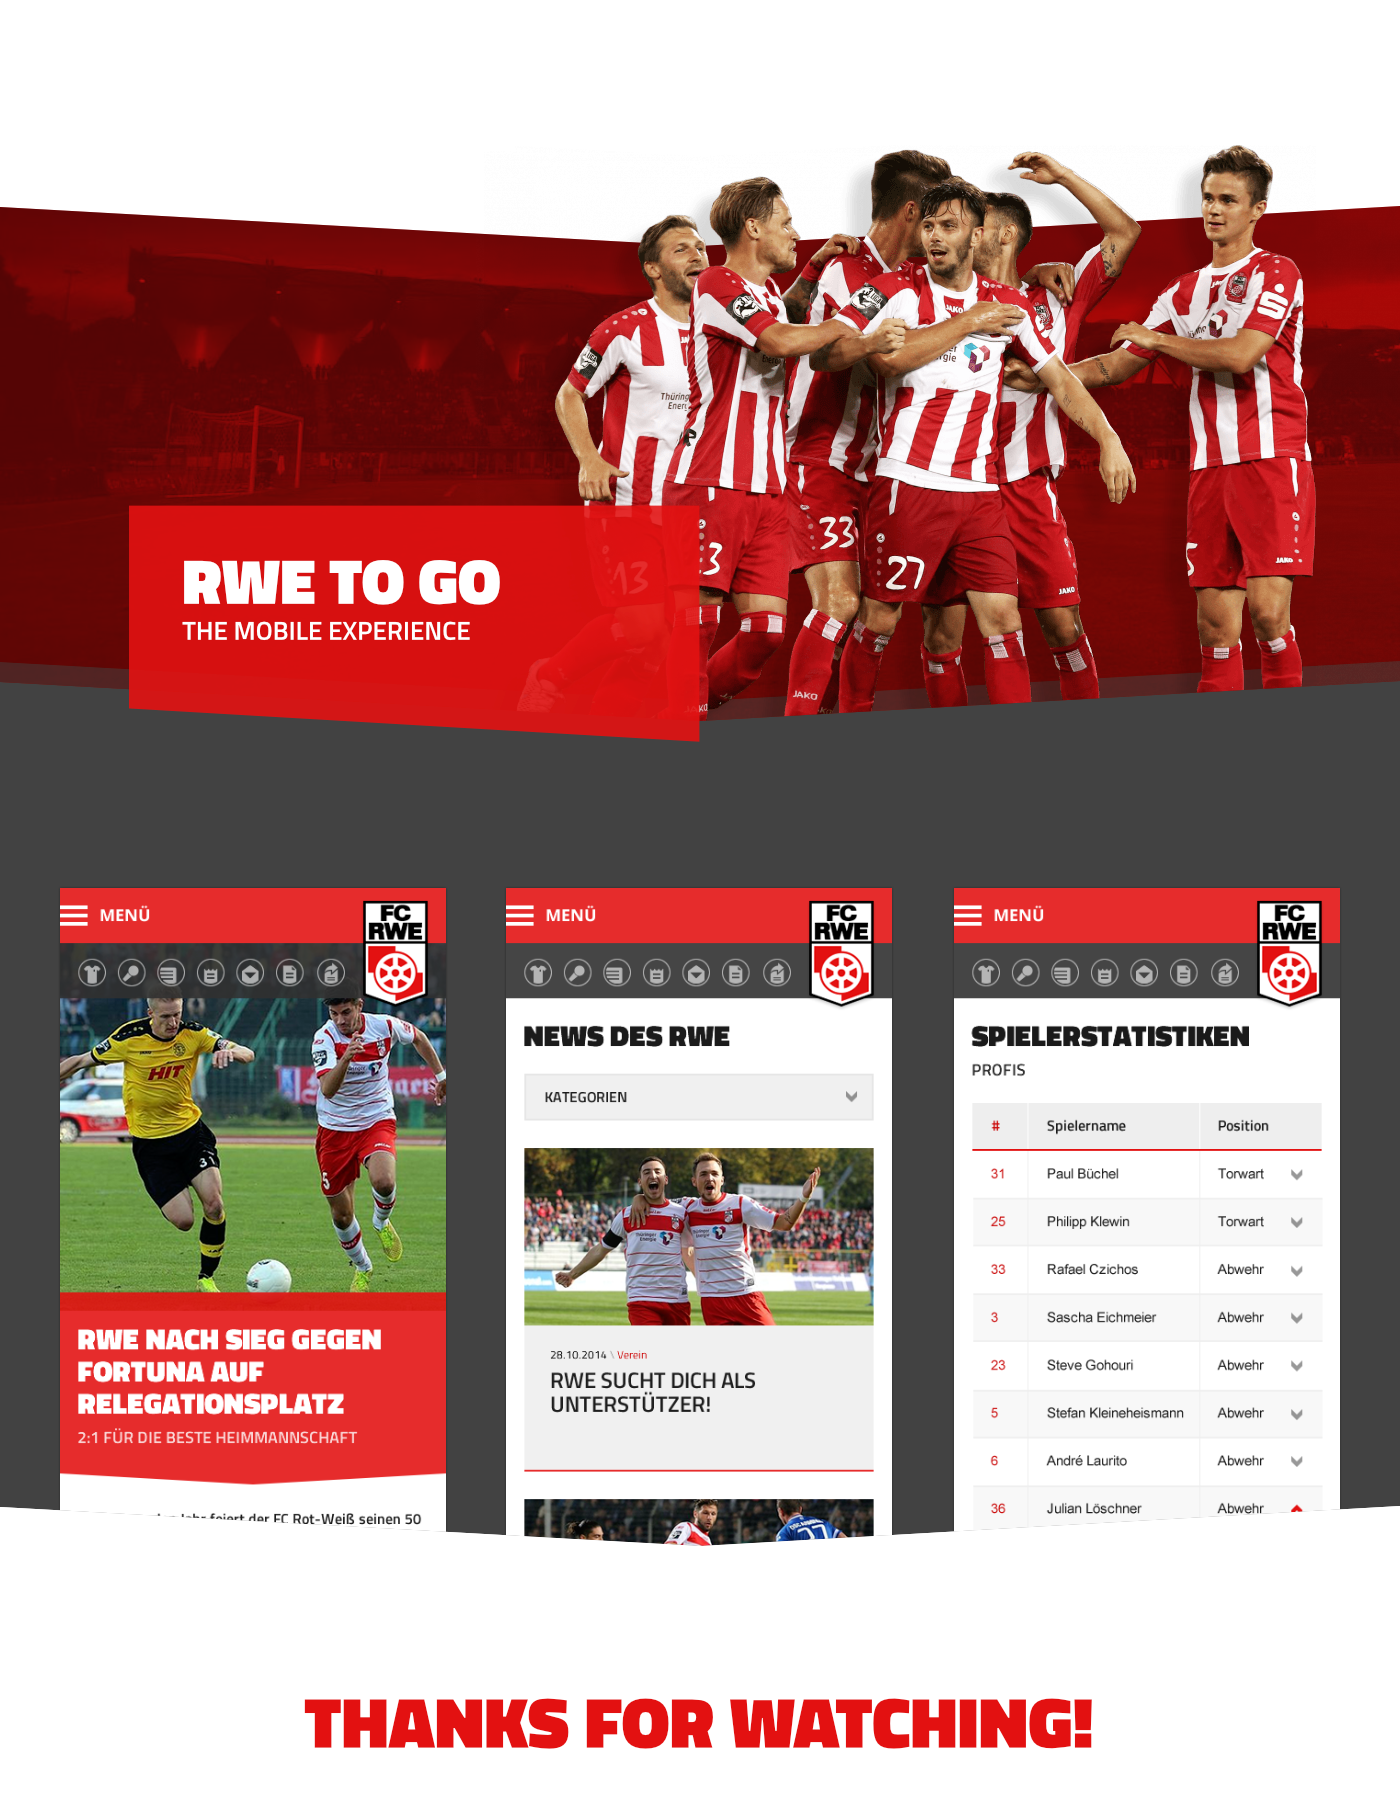 football soccer team sport web portal german germany football club mobile Responsive Live Ticker RED AND WHITE